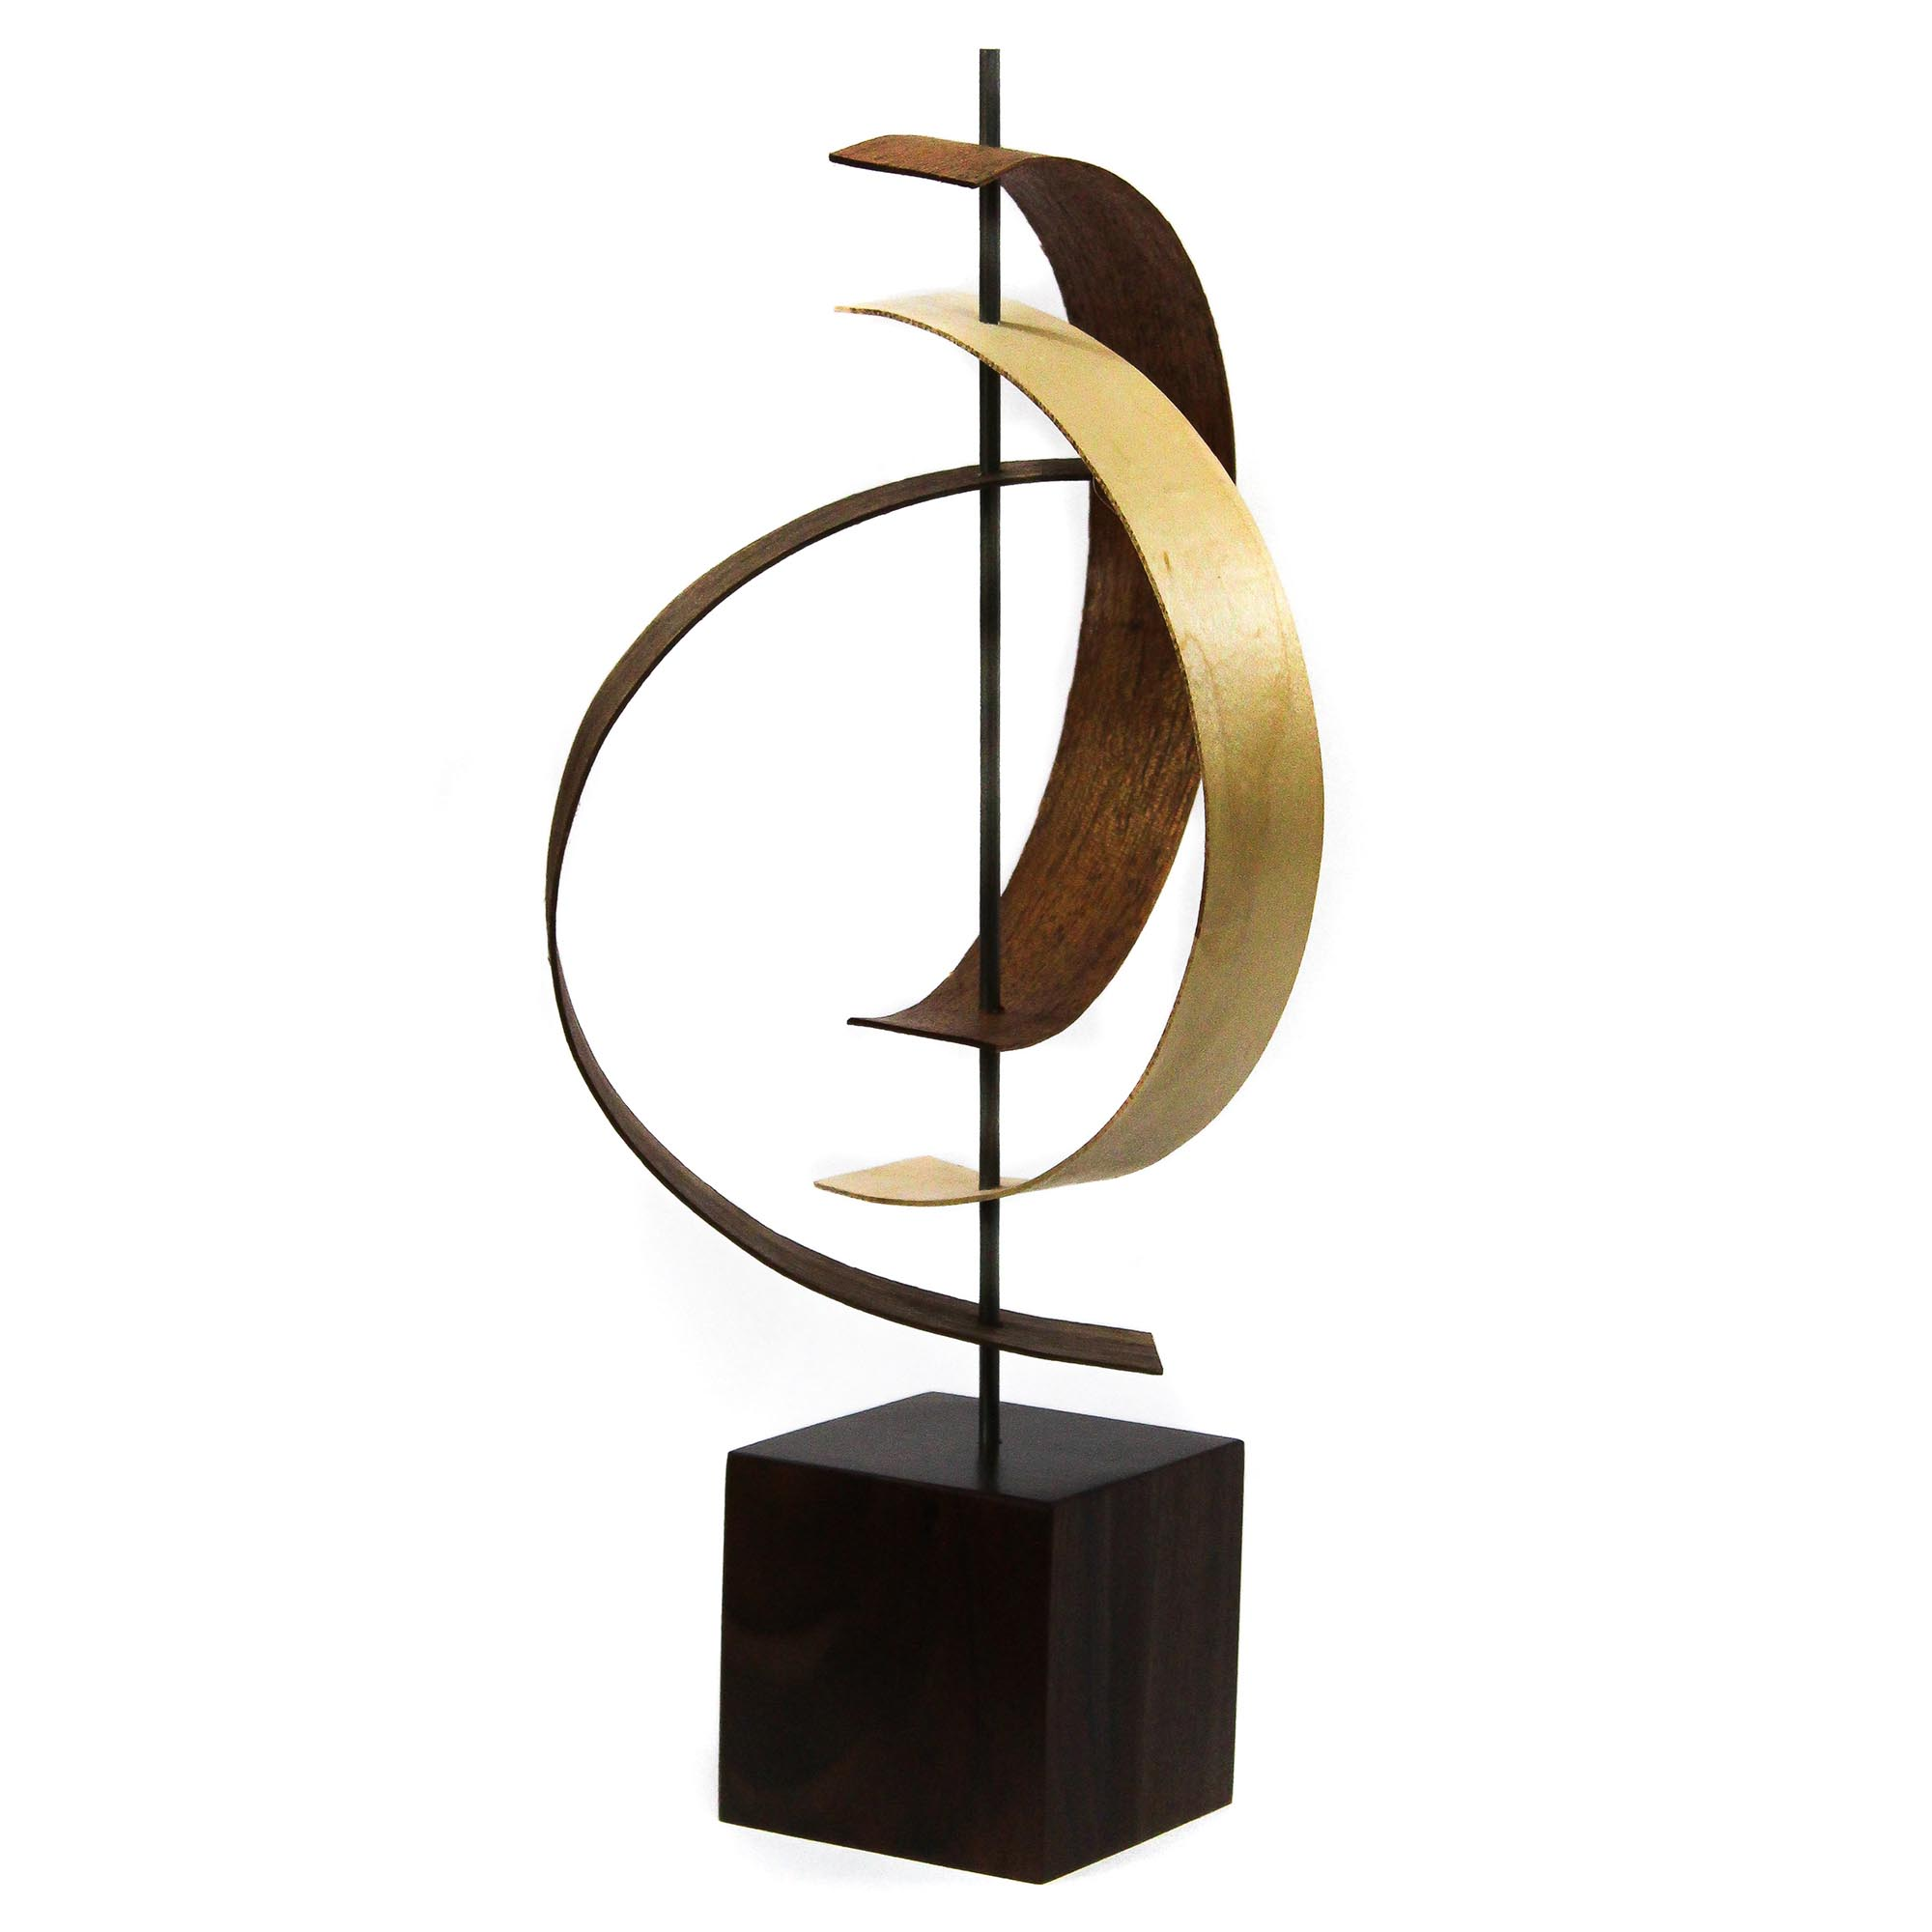 Origin by Jackson Wright - Modern Wood Sculpture, Mid-Century Home Decor - Image 2